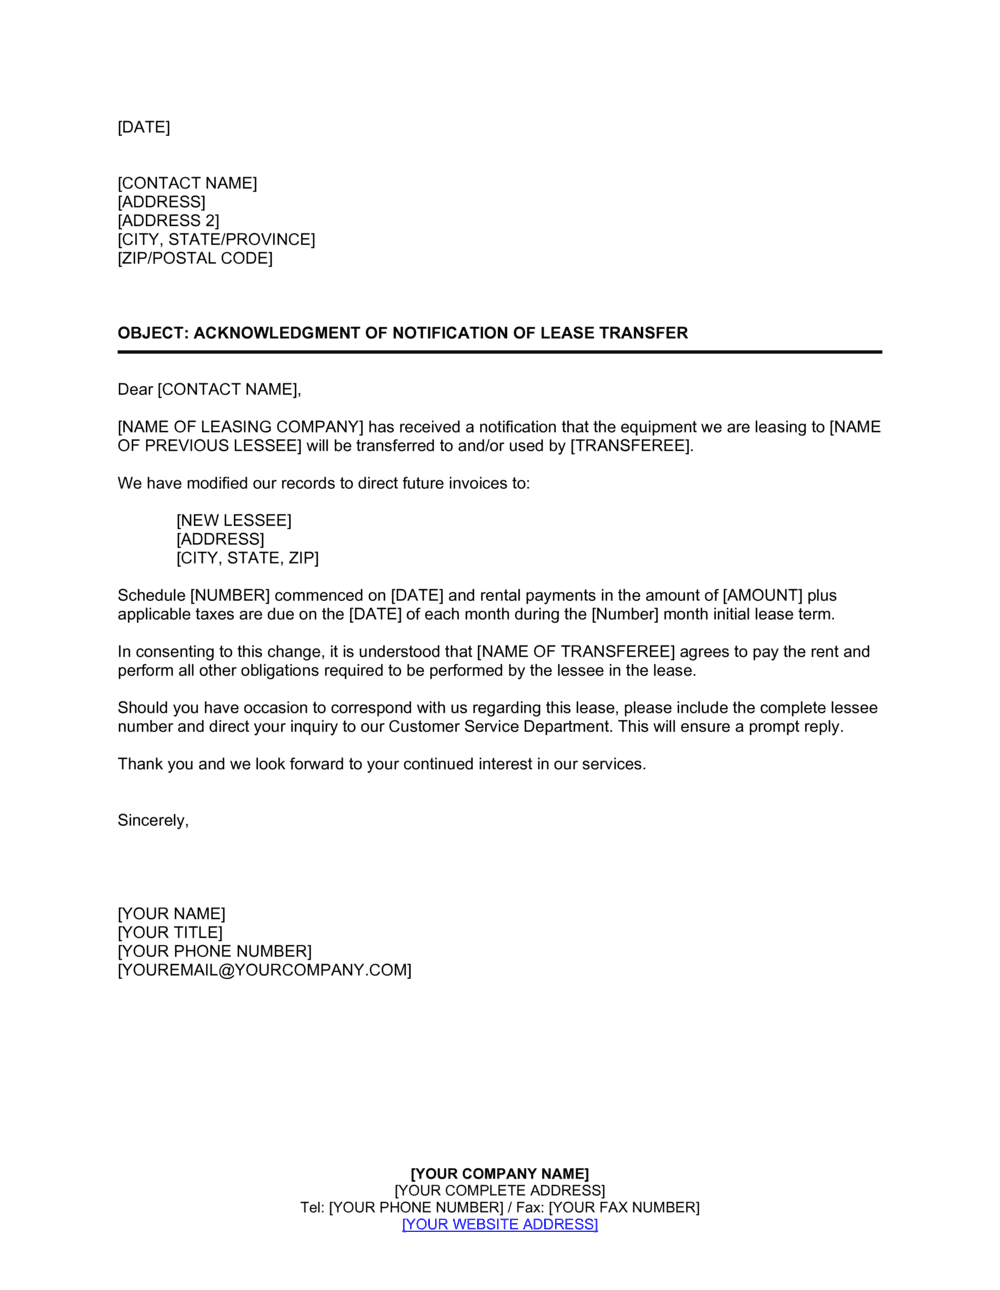 Business-in-a-Box's Acknowledgment of Notification of Lease Transfer Template